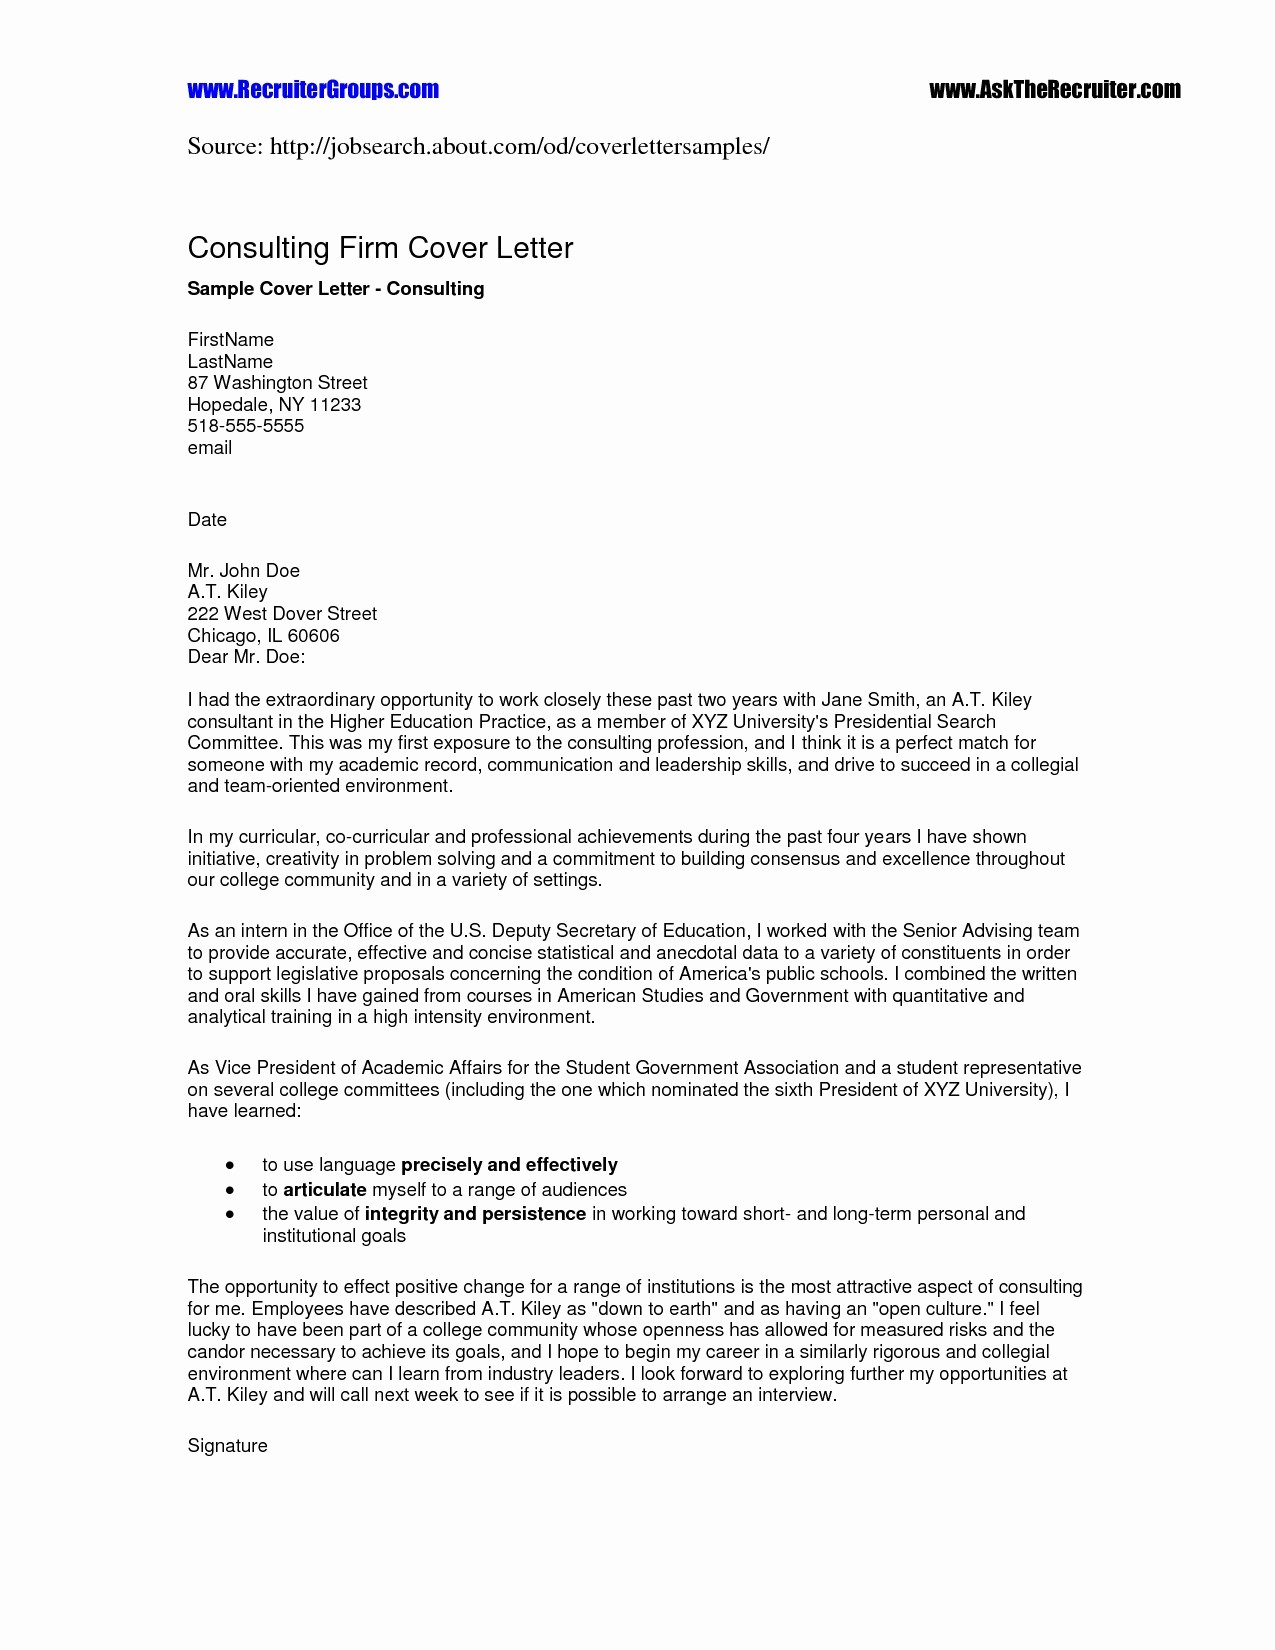 Reference Letter Template Word Document - Sample Cover Letter for Good Conduct Certificate Fresh Reference